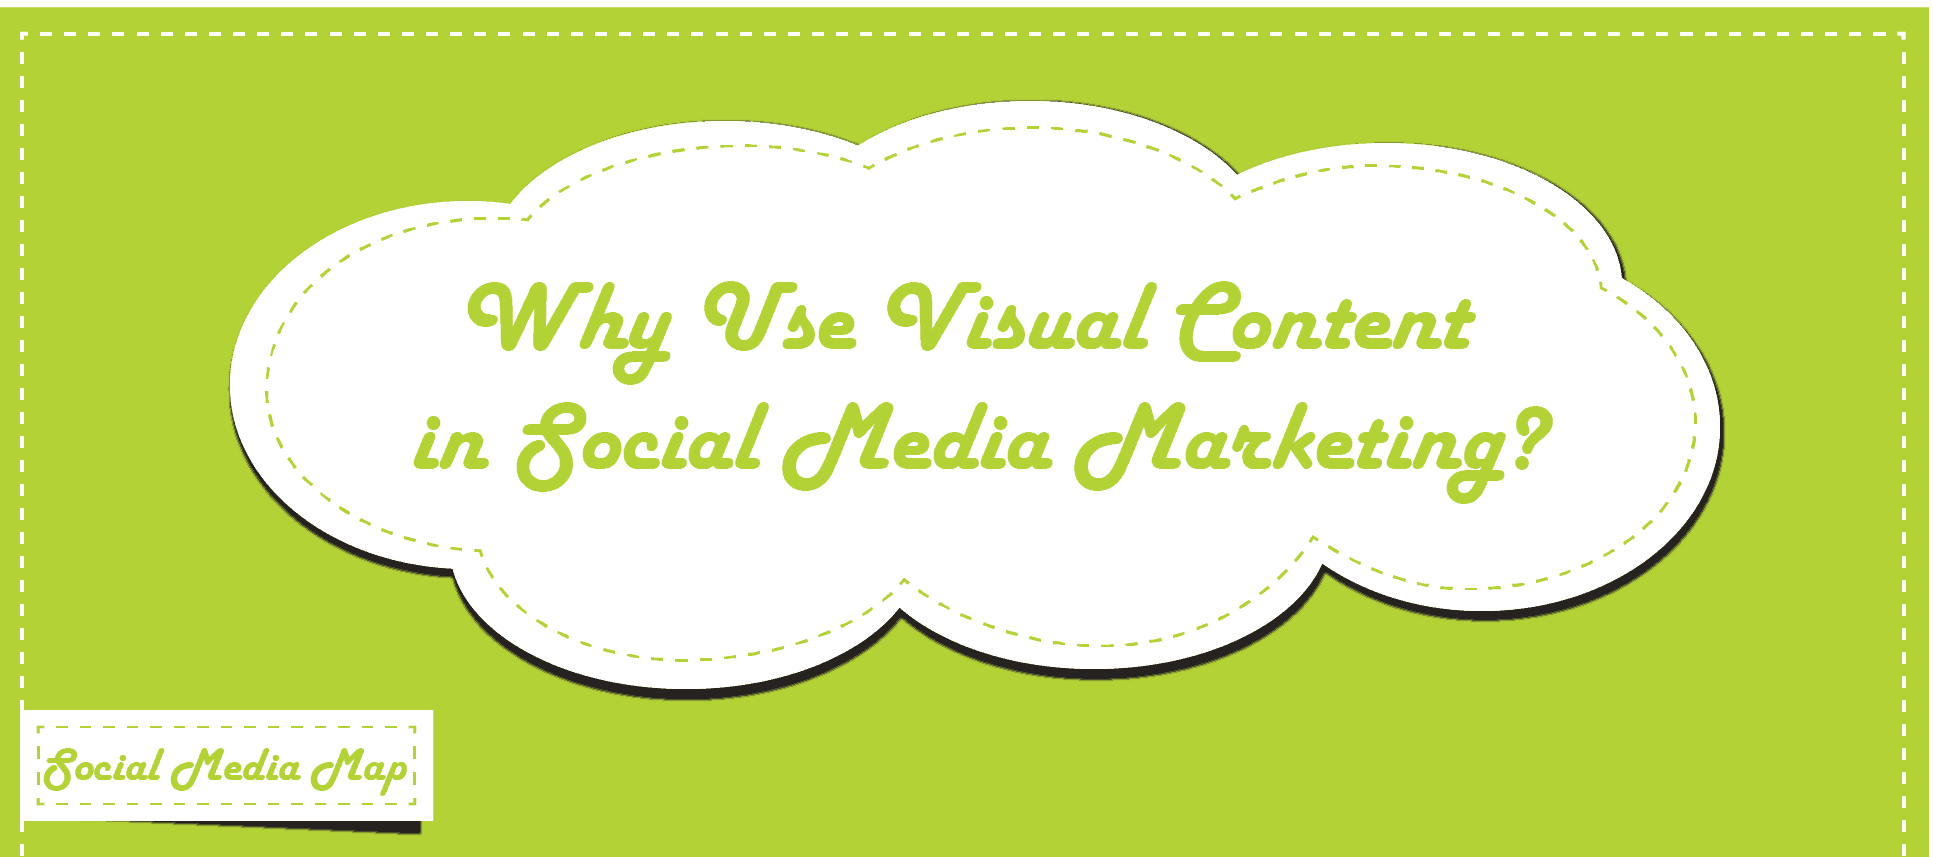 why-use-visual-content-in-social-media-marketing-final-6060911